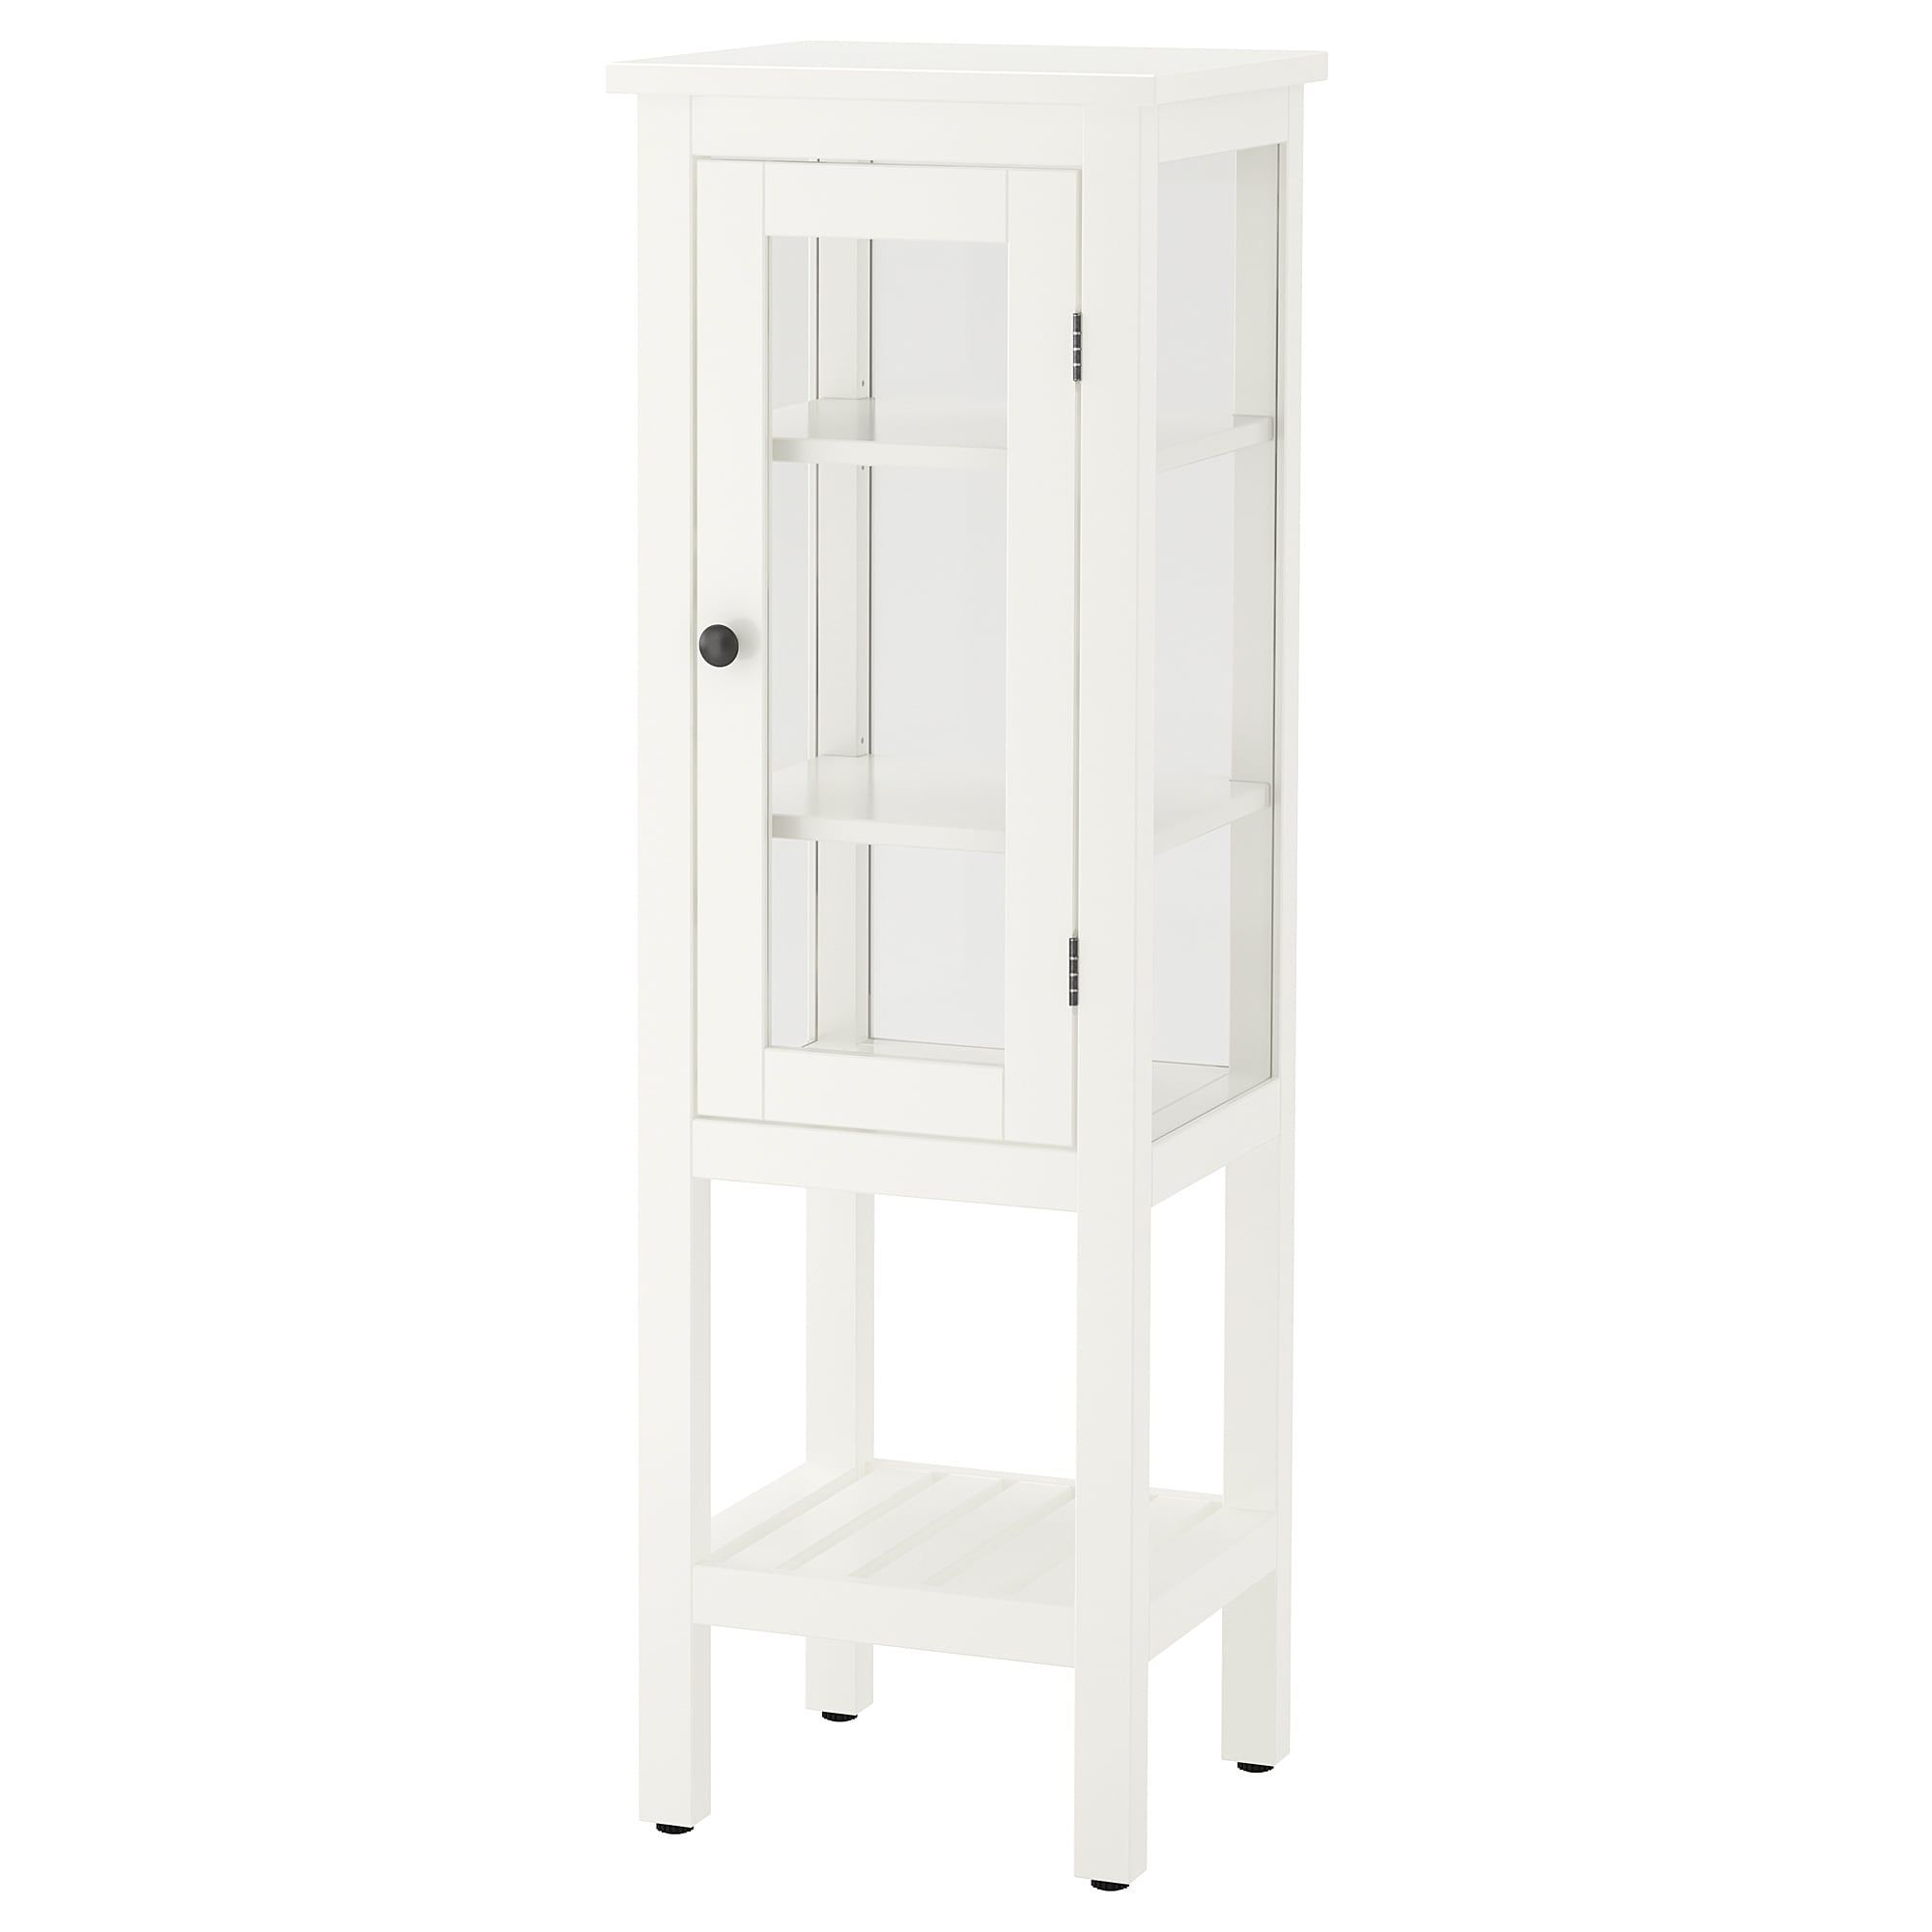 HEMNES High cabinet with glass door, white, 16 12x15x51 58